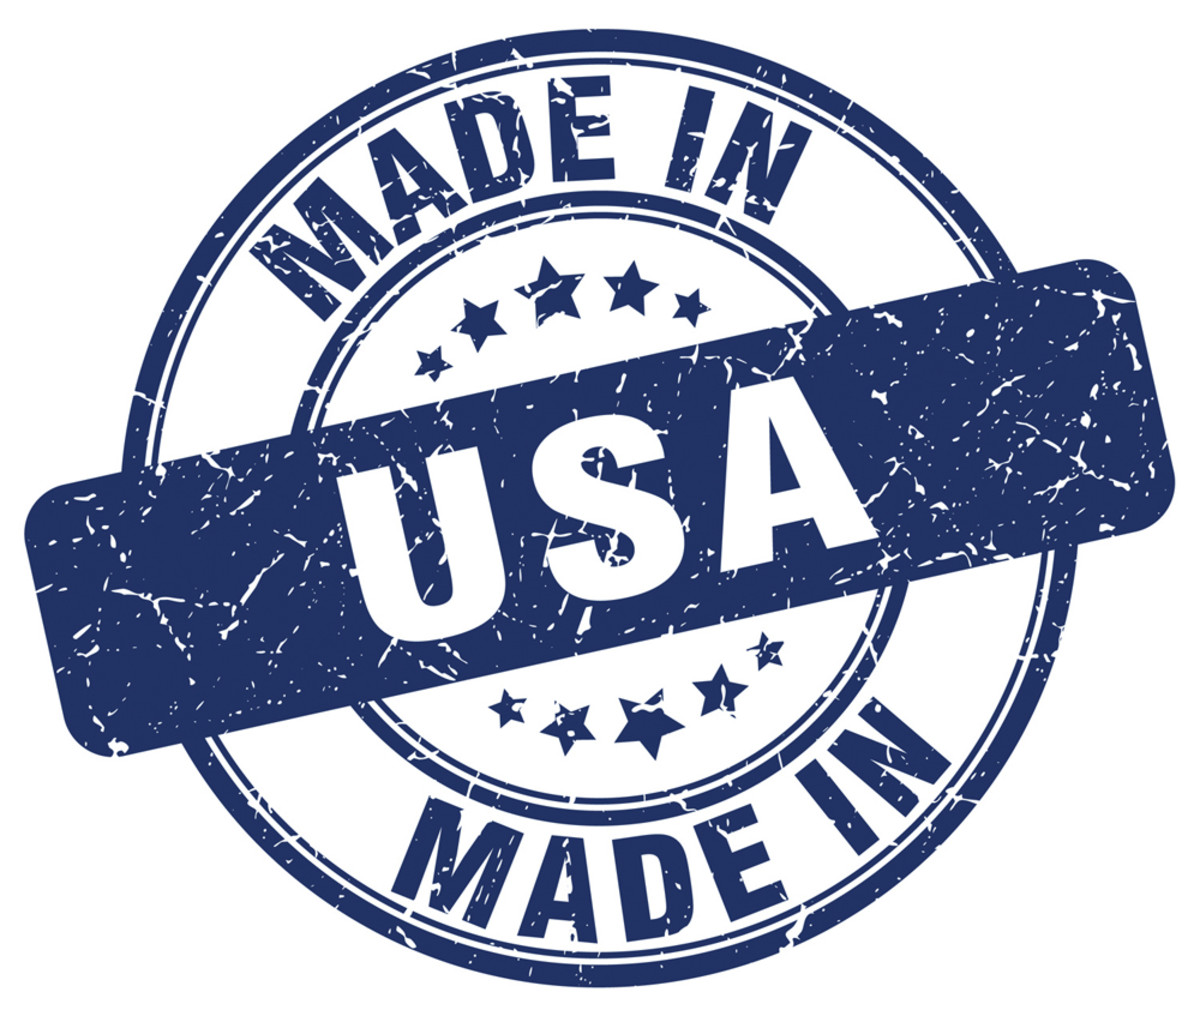 The NMMA says 95 percent of boats sold in the U.S. are manufactured in this country.